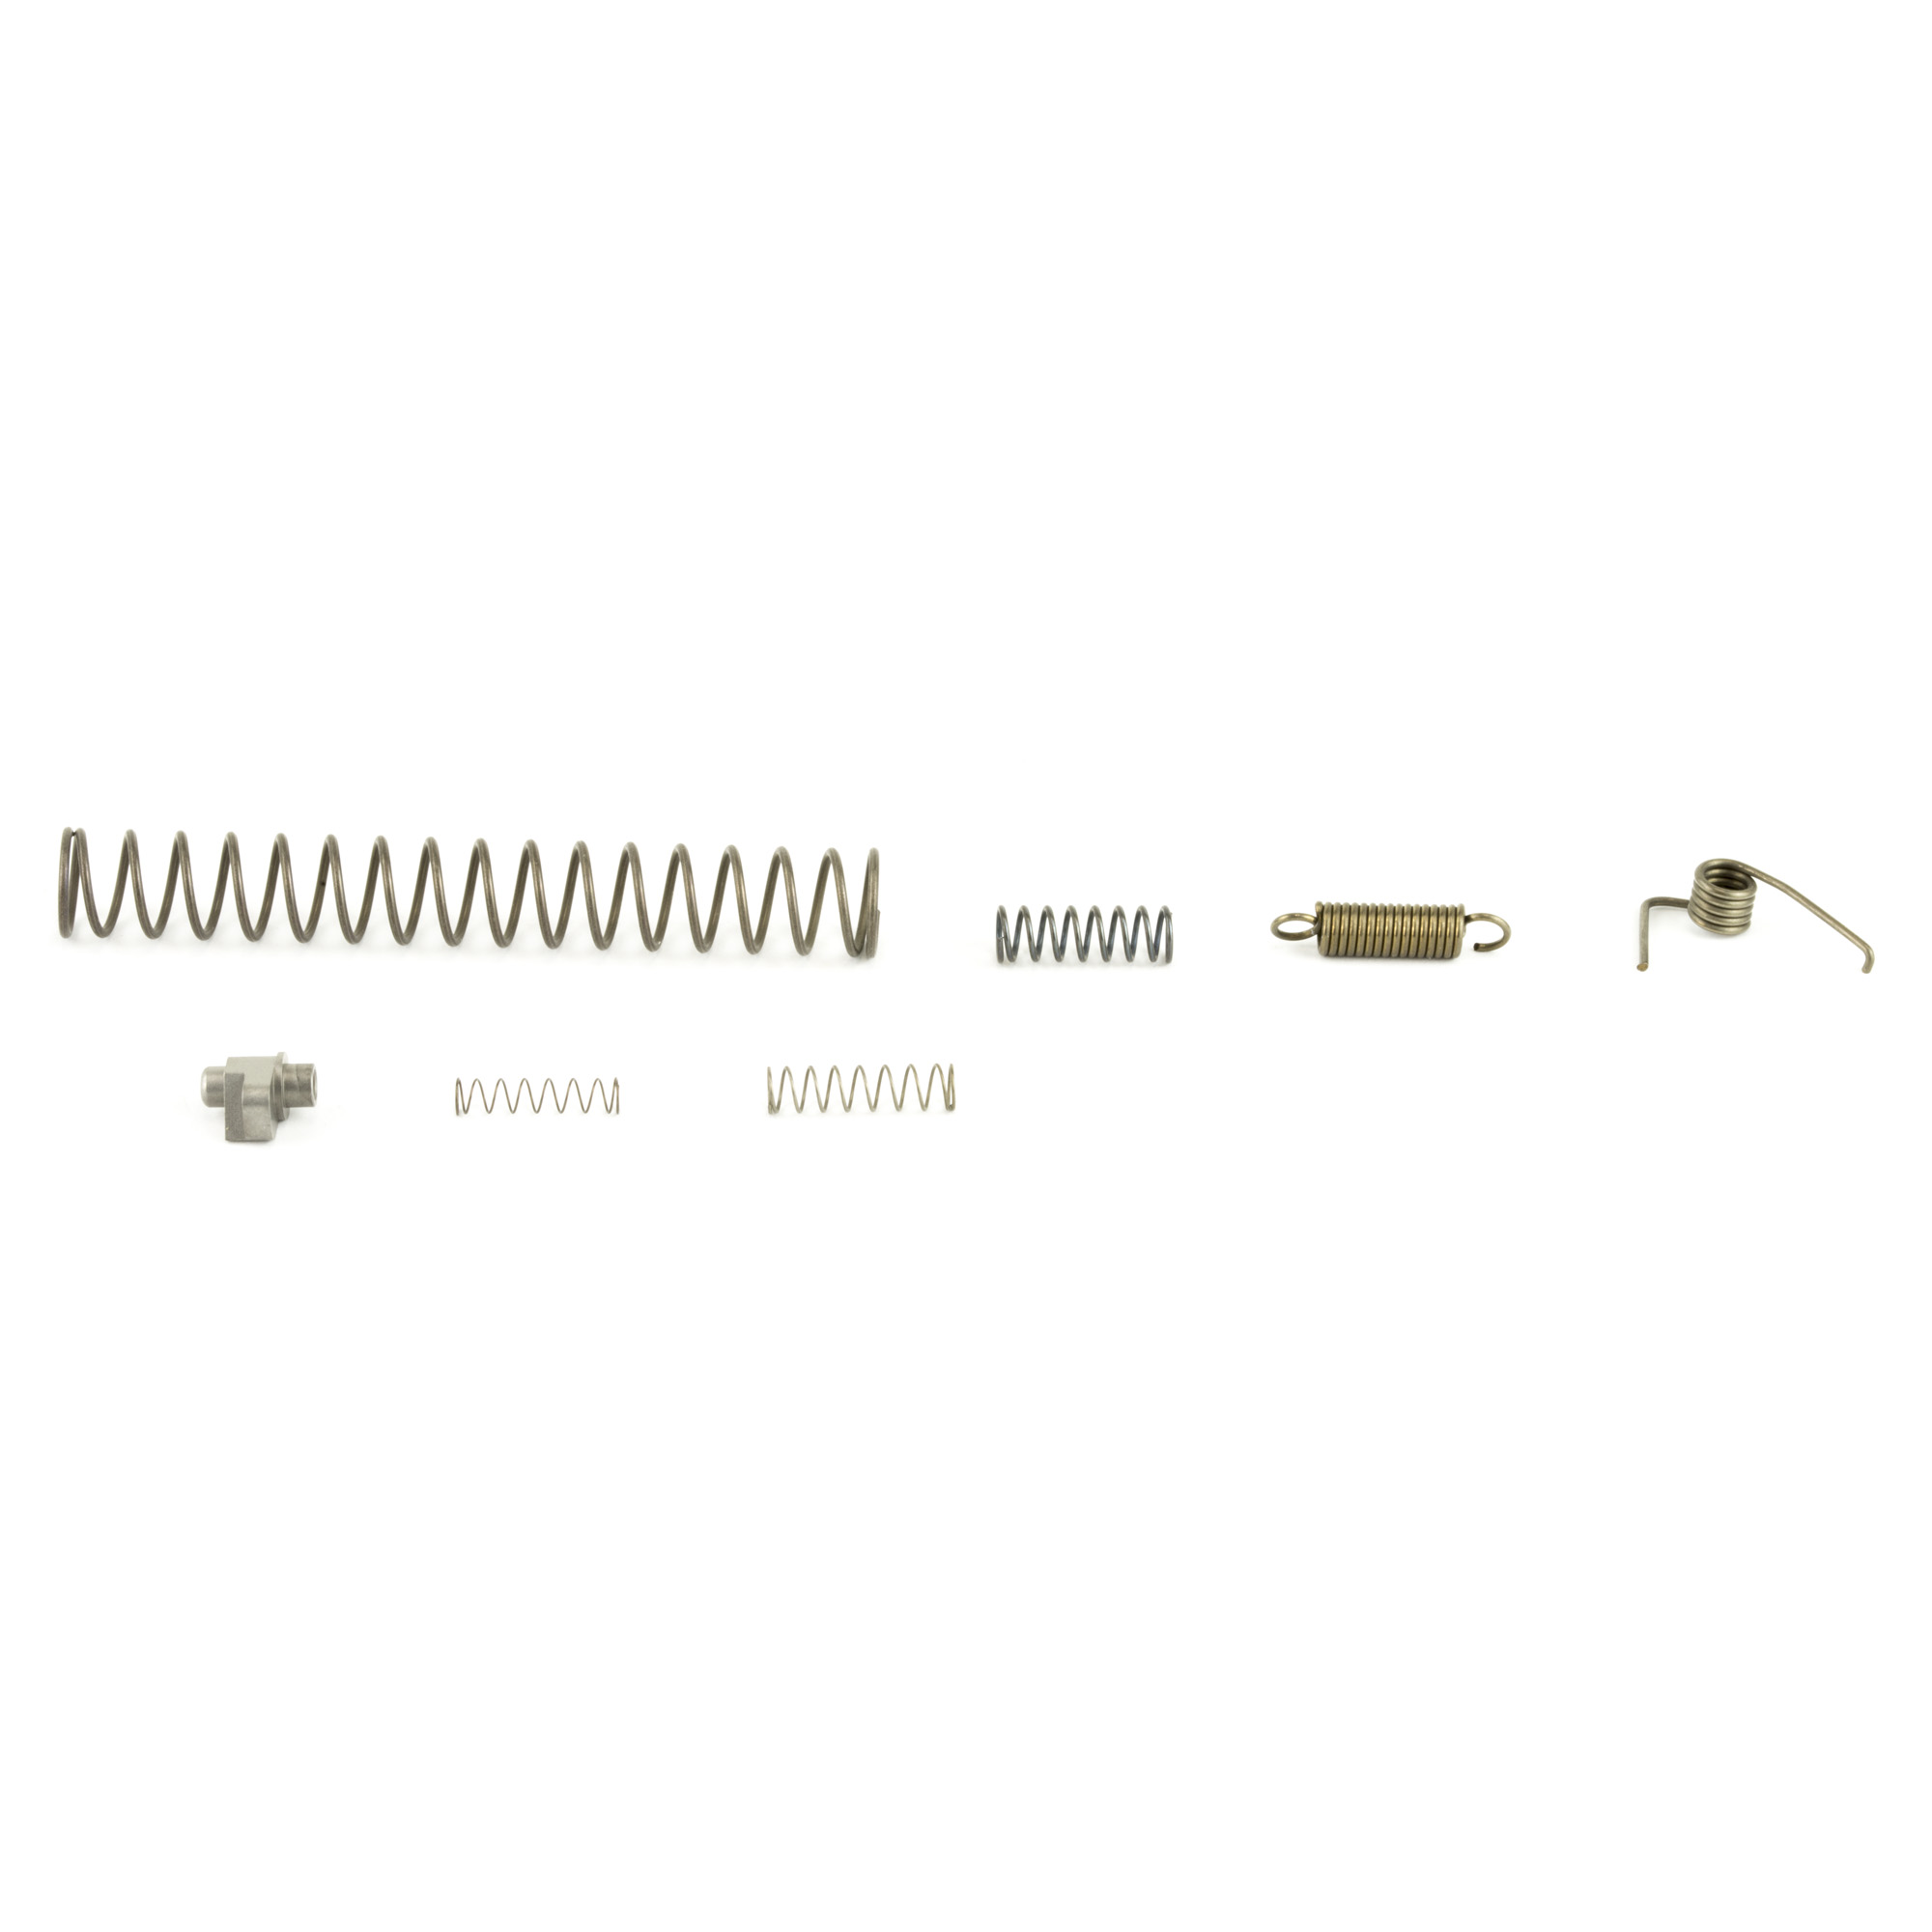 This Trigger Spring Kit for XDS & XDS Mod2 will lower the trigger pull and give reliable function of your carry pistol. (Designed to work on XDS pistols that are manufactured post recall or that have had the recall work performed on them.)